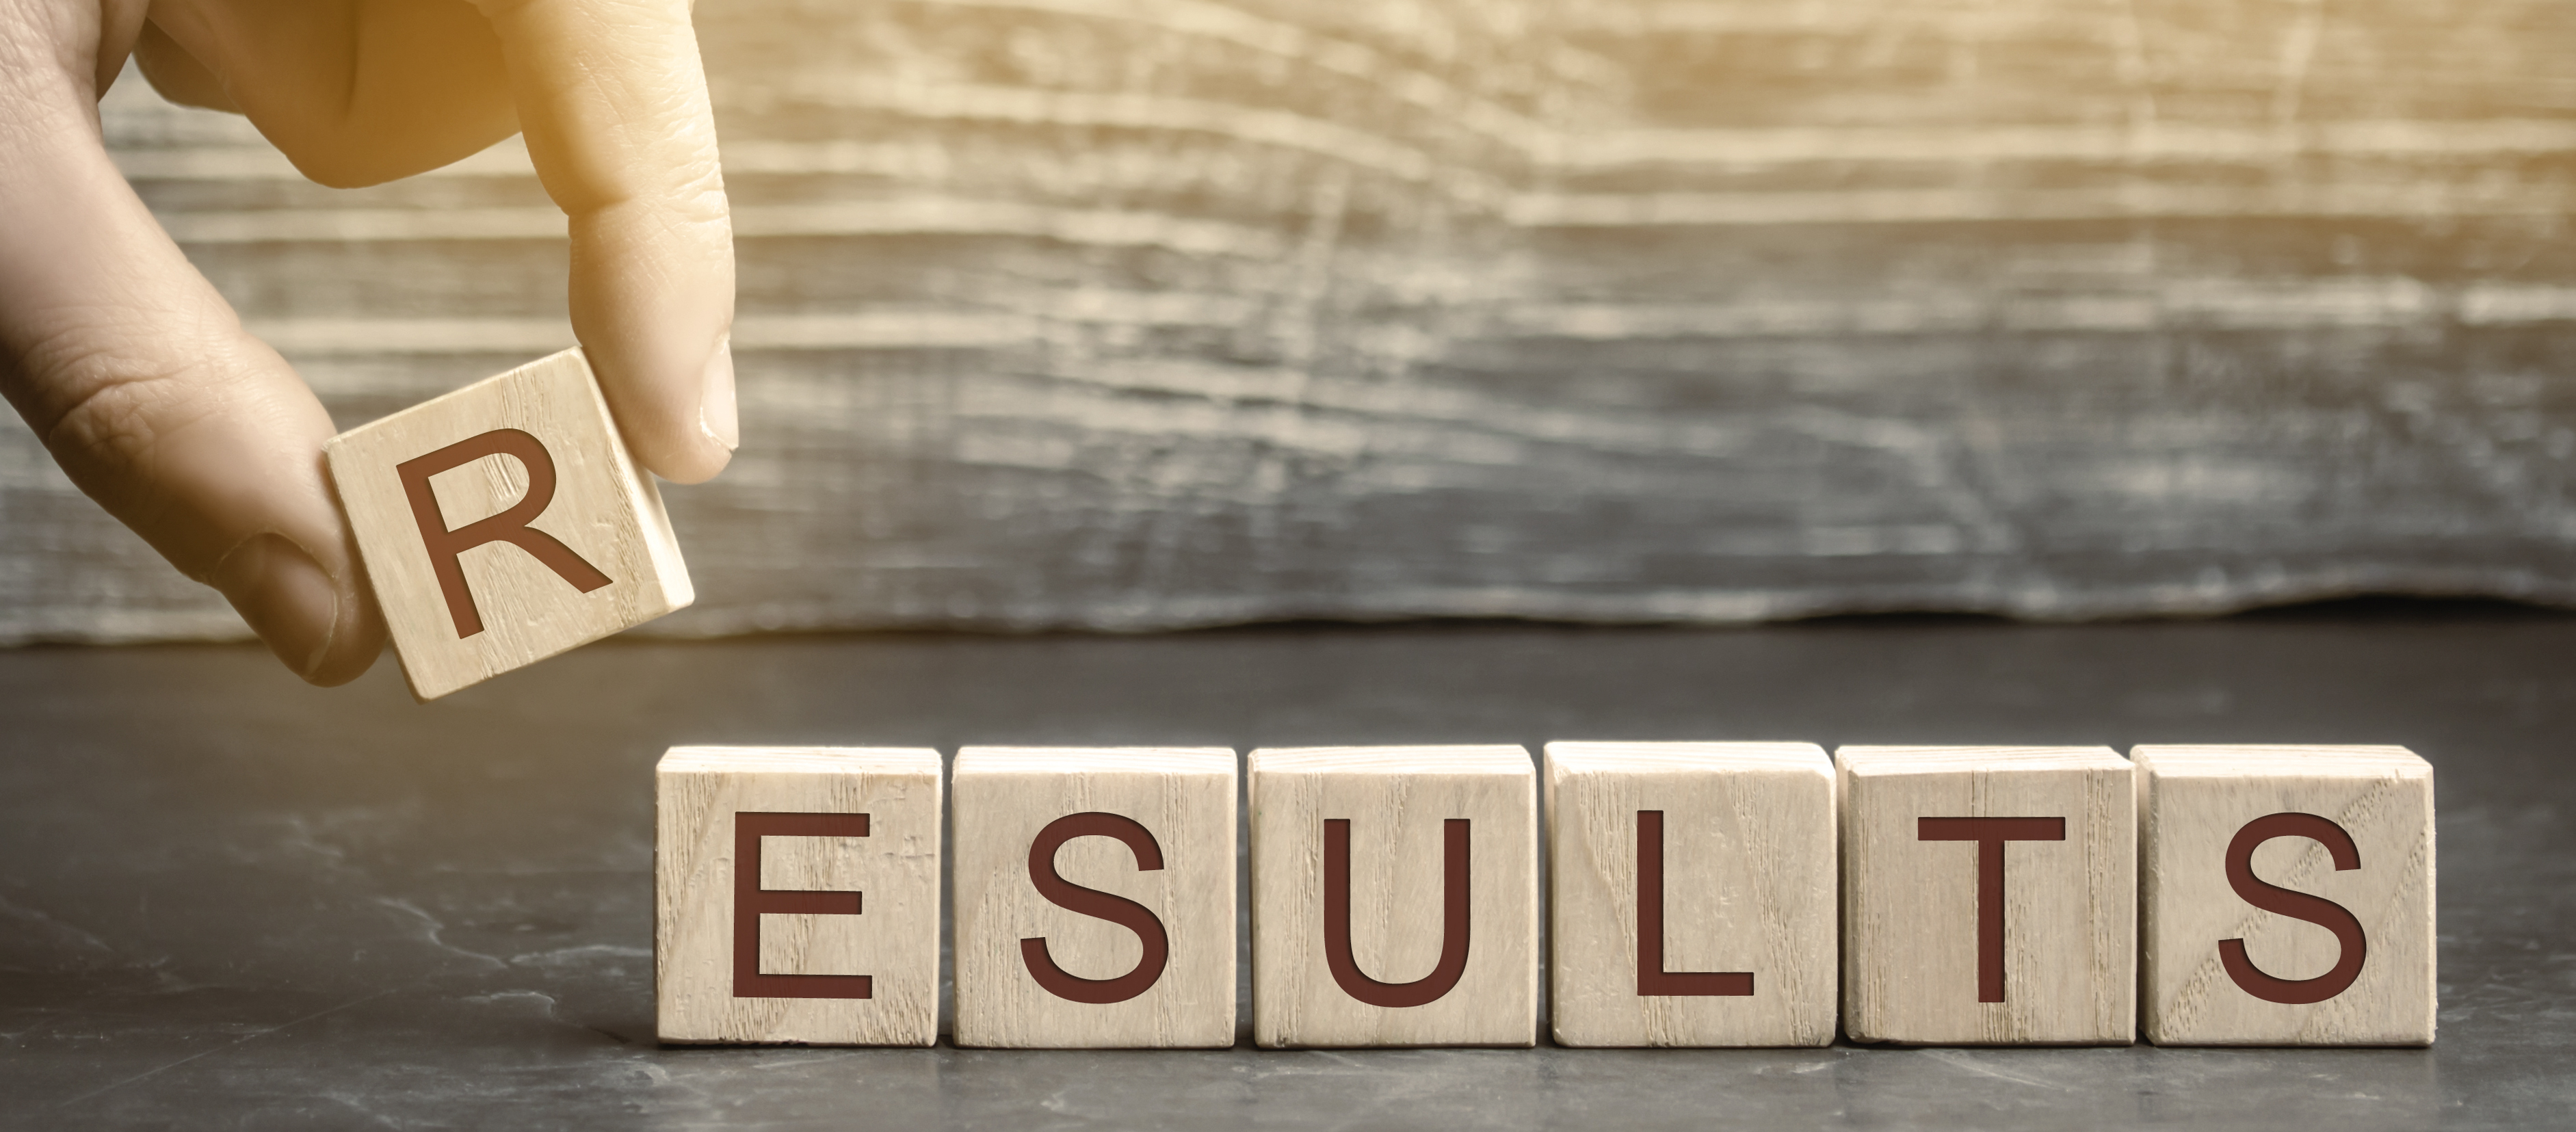 Businessman-Puts-Wooden-Blocks-That-Spells-Out-Results